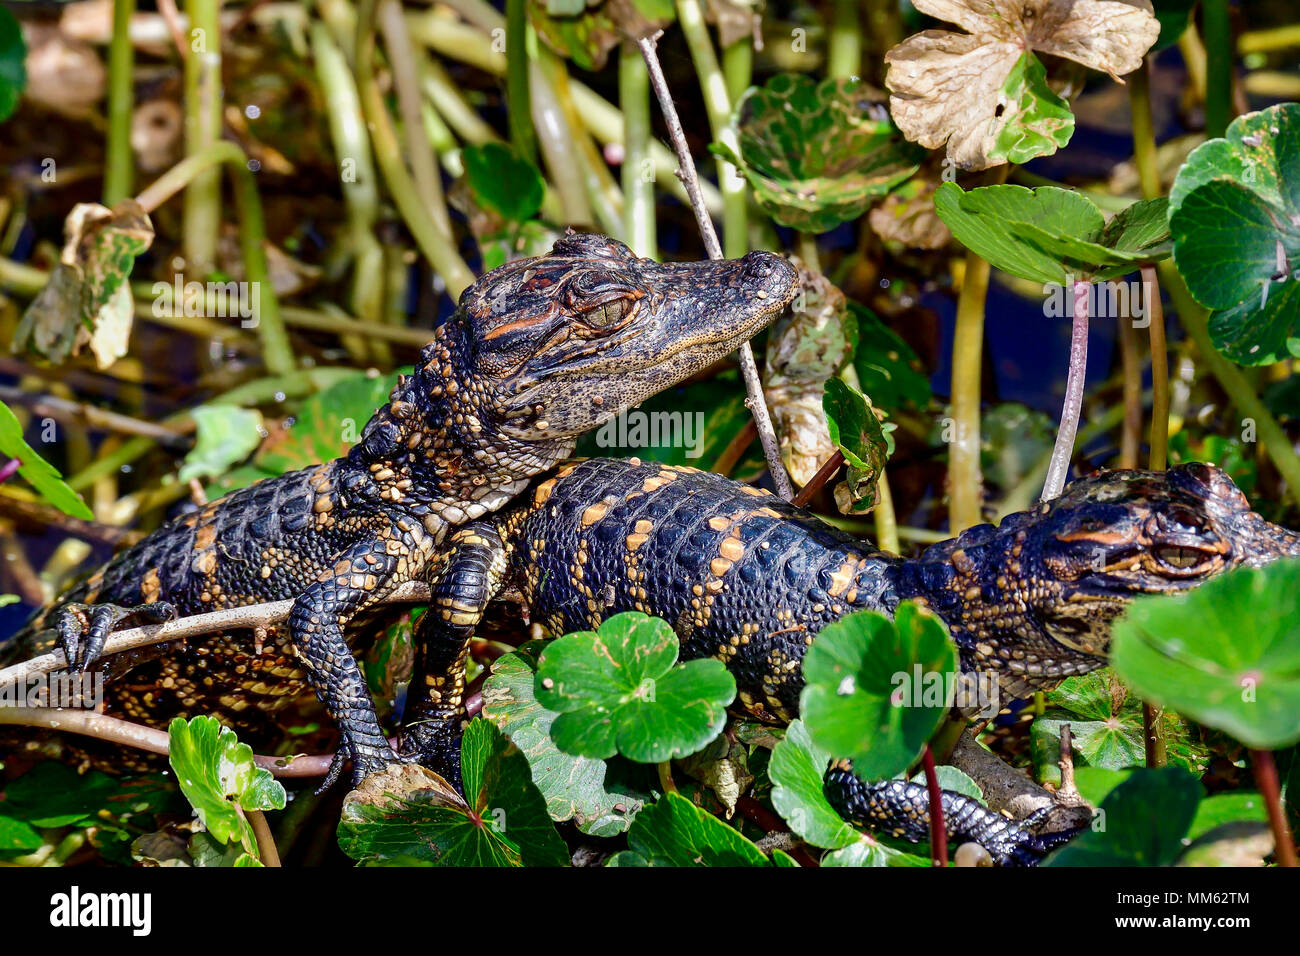 American alligator babies hiding in vegetation. Stock Photo